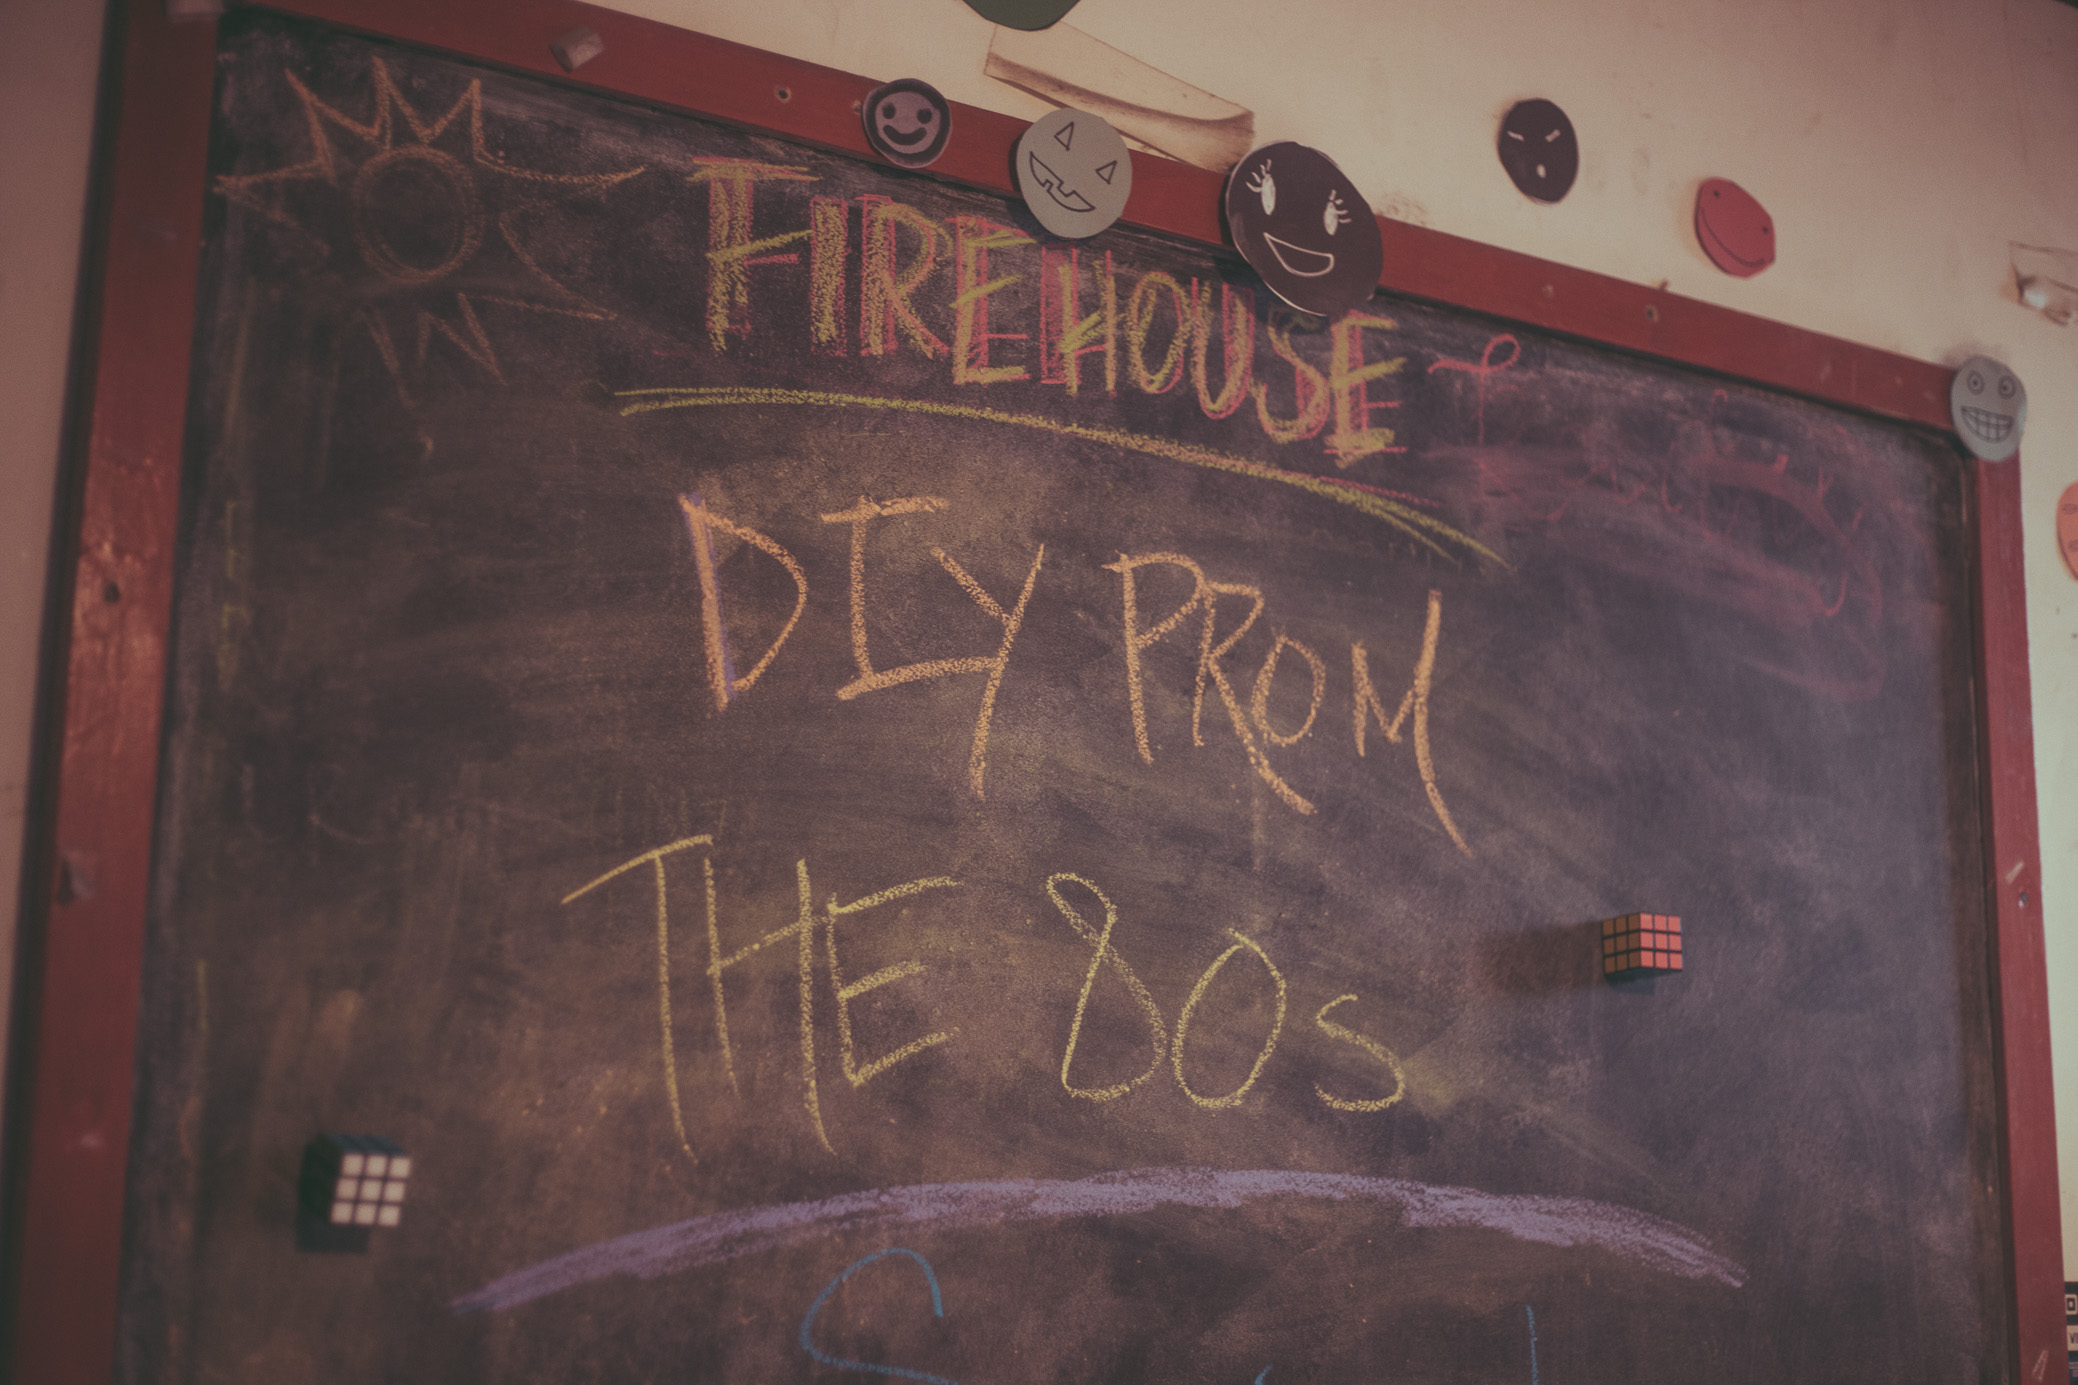 A scene from DIY Birmingham's Prom: The 1980's at the Spring Street Firehouse in Birmingham, Alabama on May 26th, 2018. (Photo by David A. Smith/DSmithScenes)